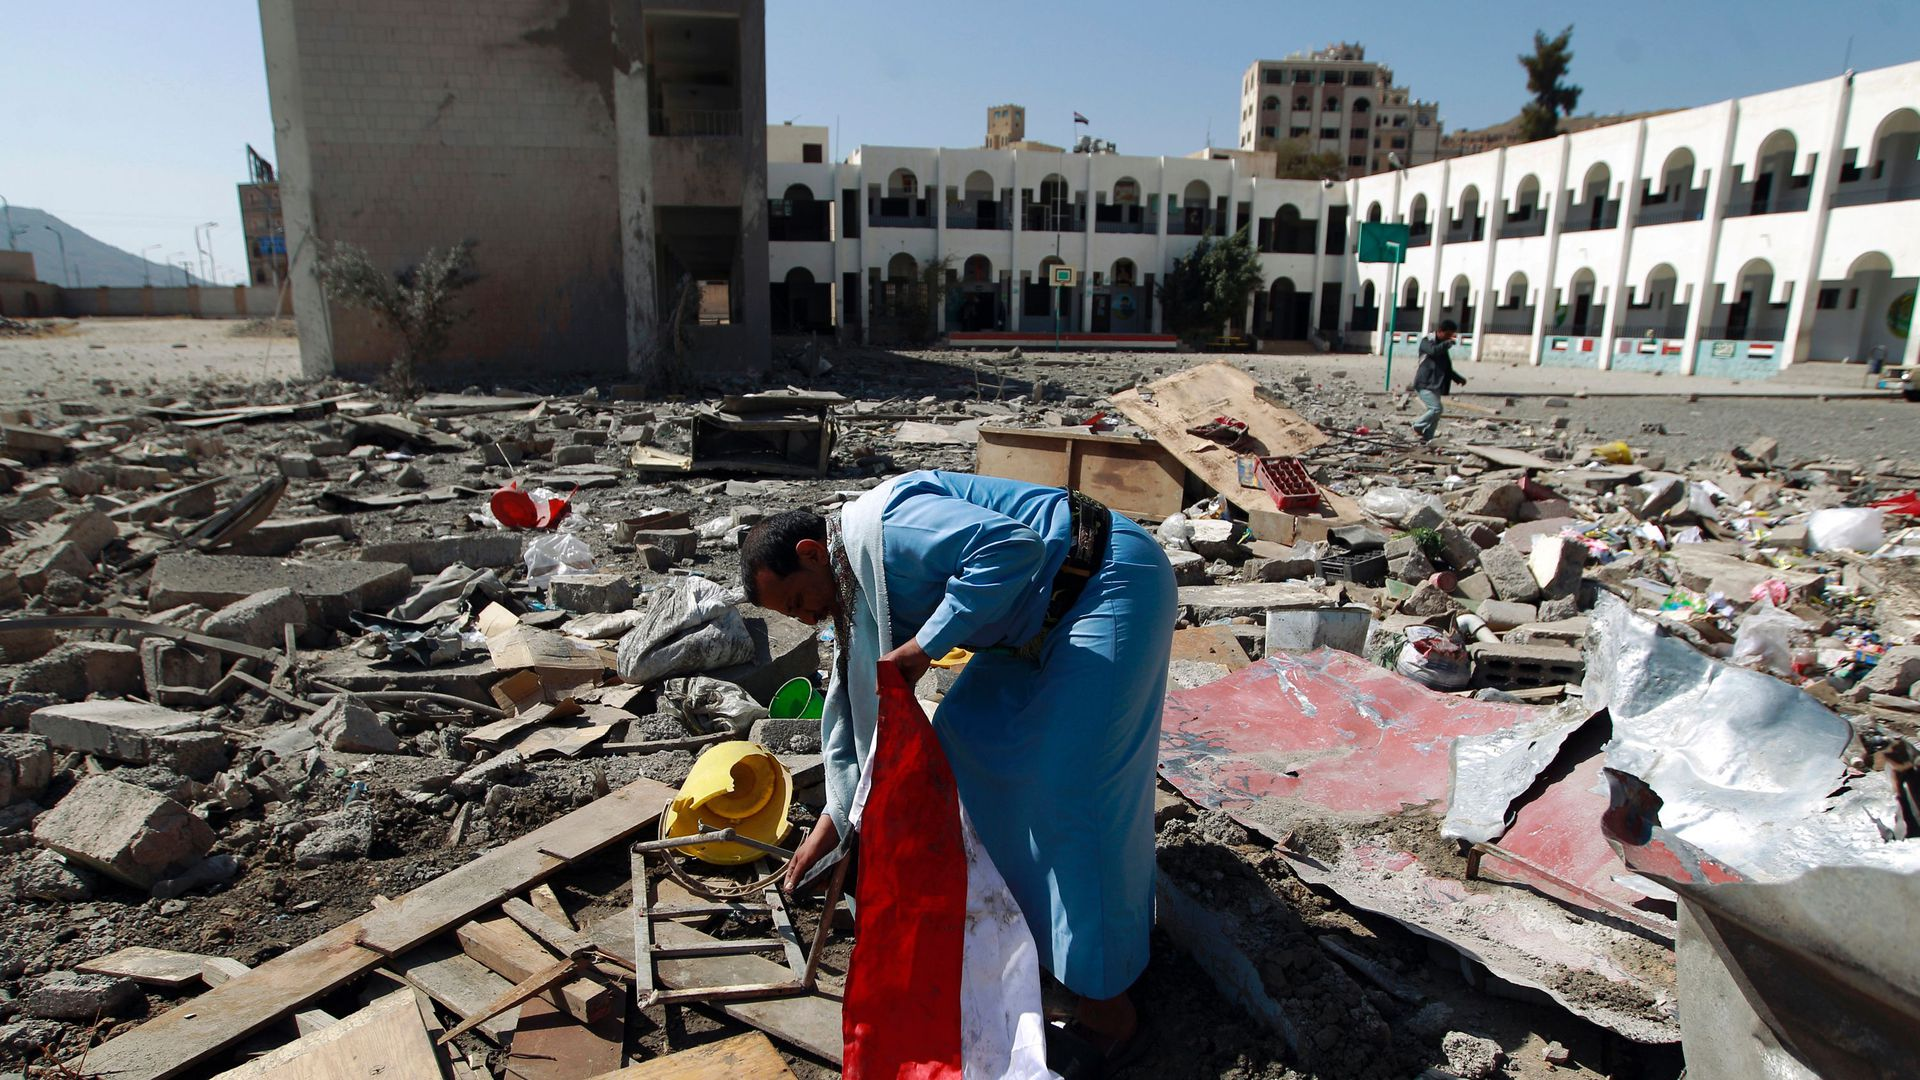 In this image, a man in Yemen holds a flag while searching through rubble.